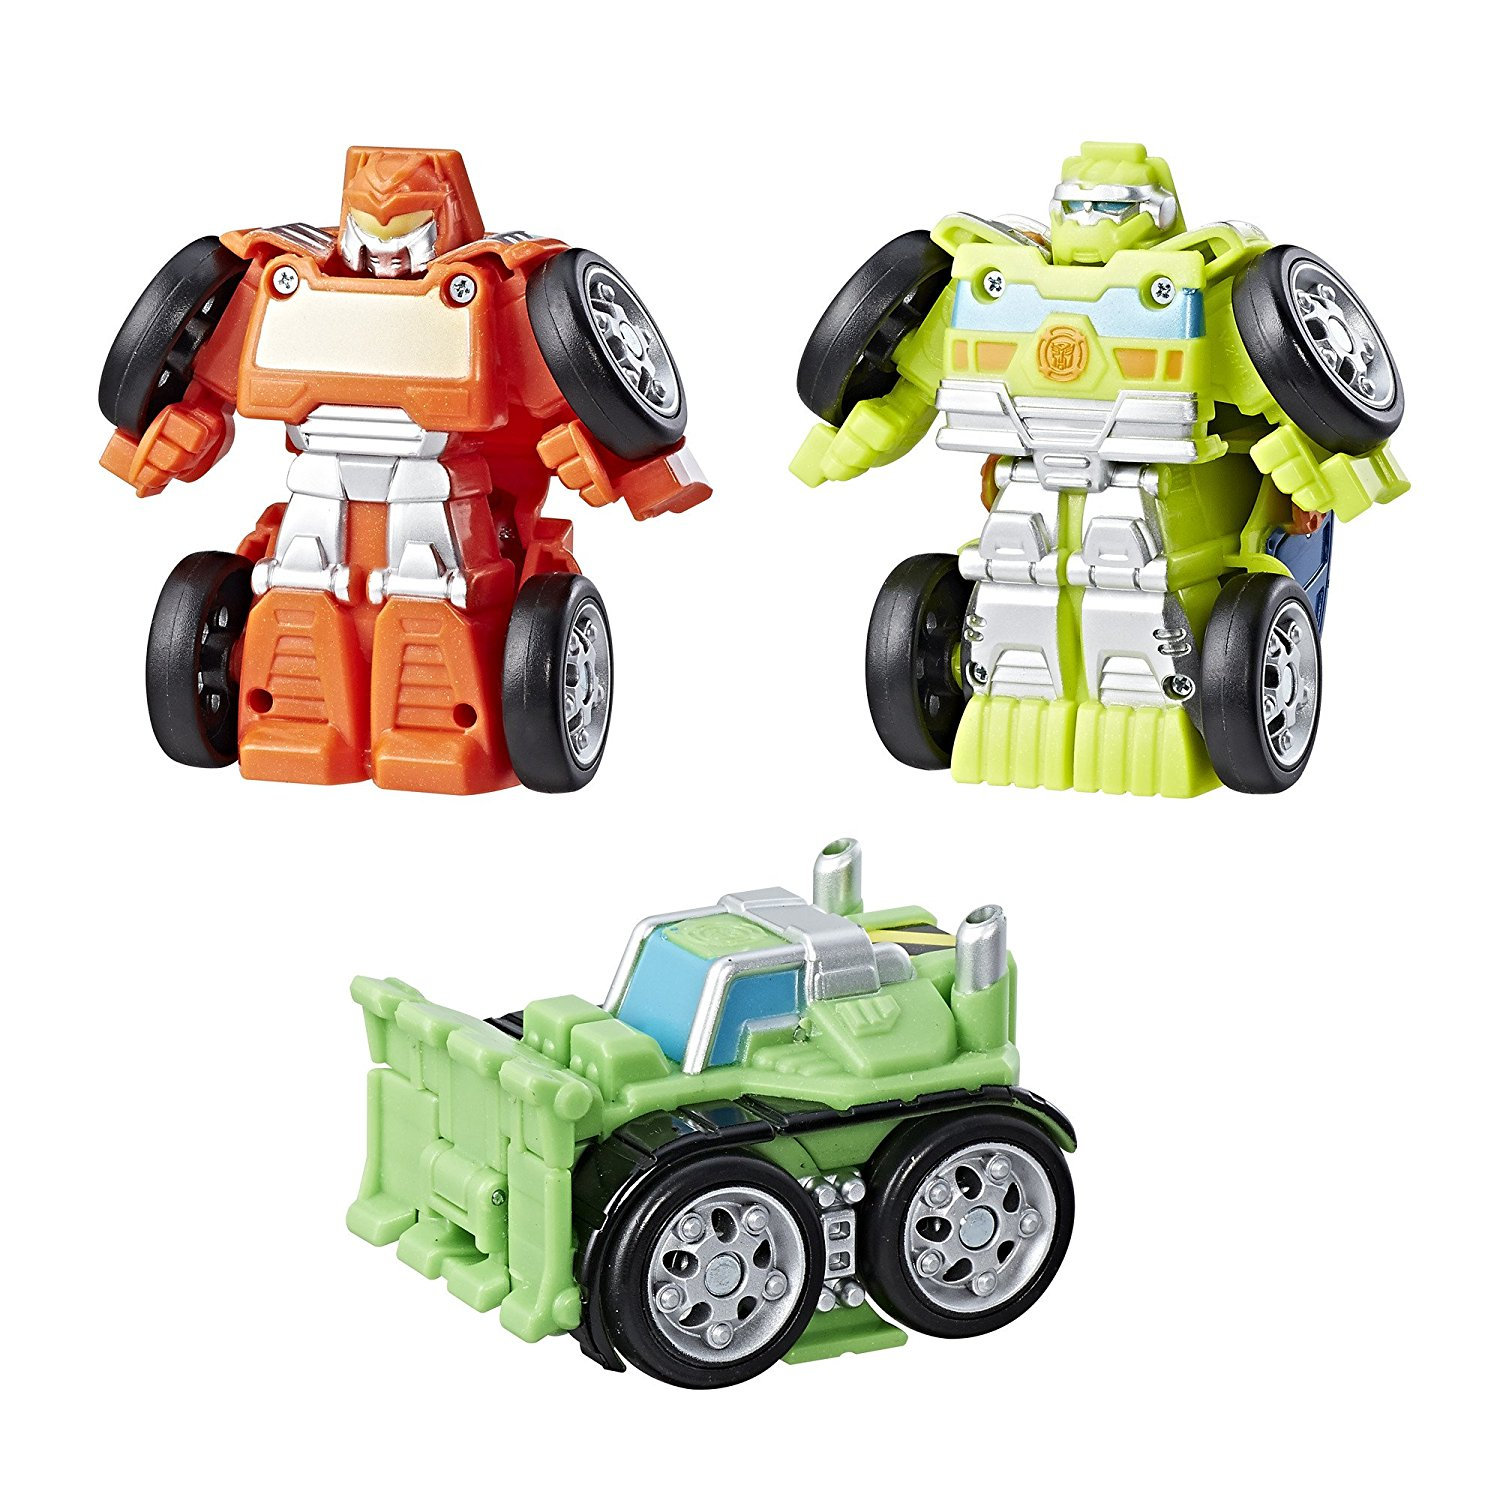 Heroes Transformers Rescue Bots Flip Racers Griffin Rock Construction Team, Includes... by